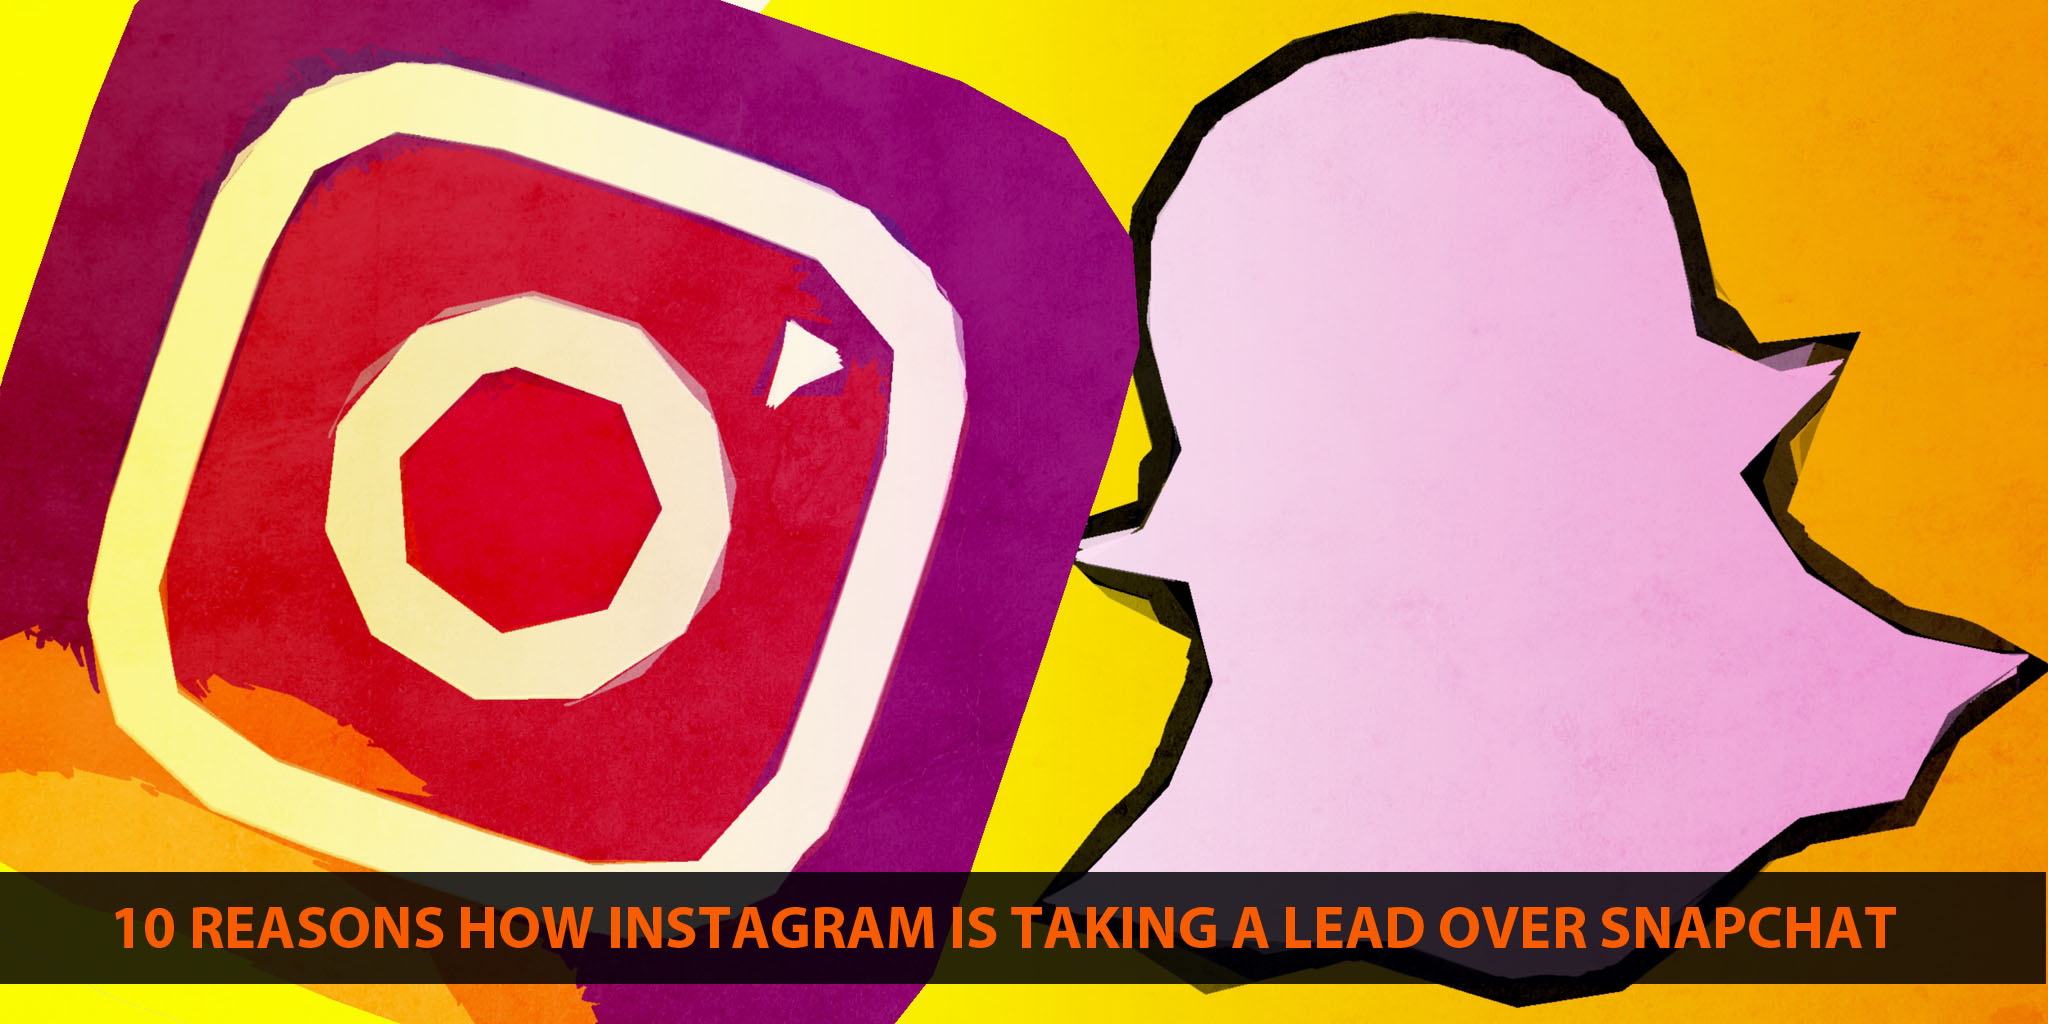 10 reasons how Instagram is taking a lead over Snapchat